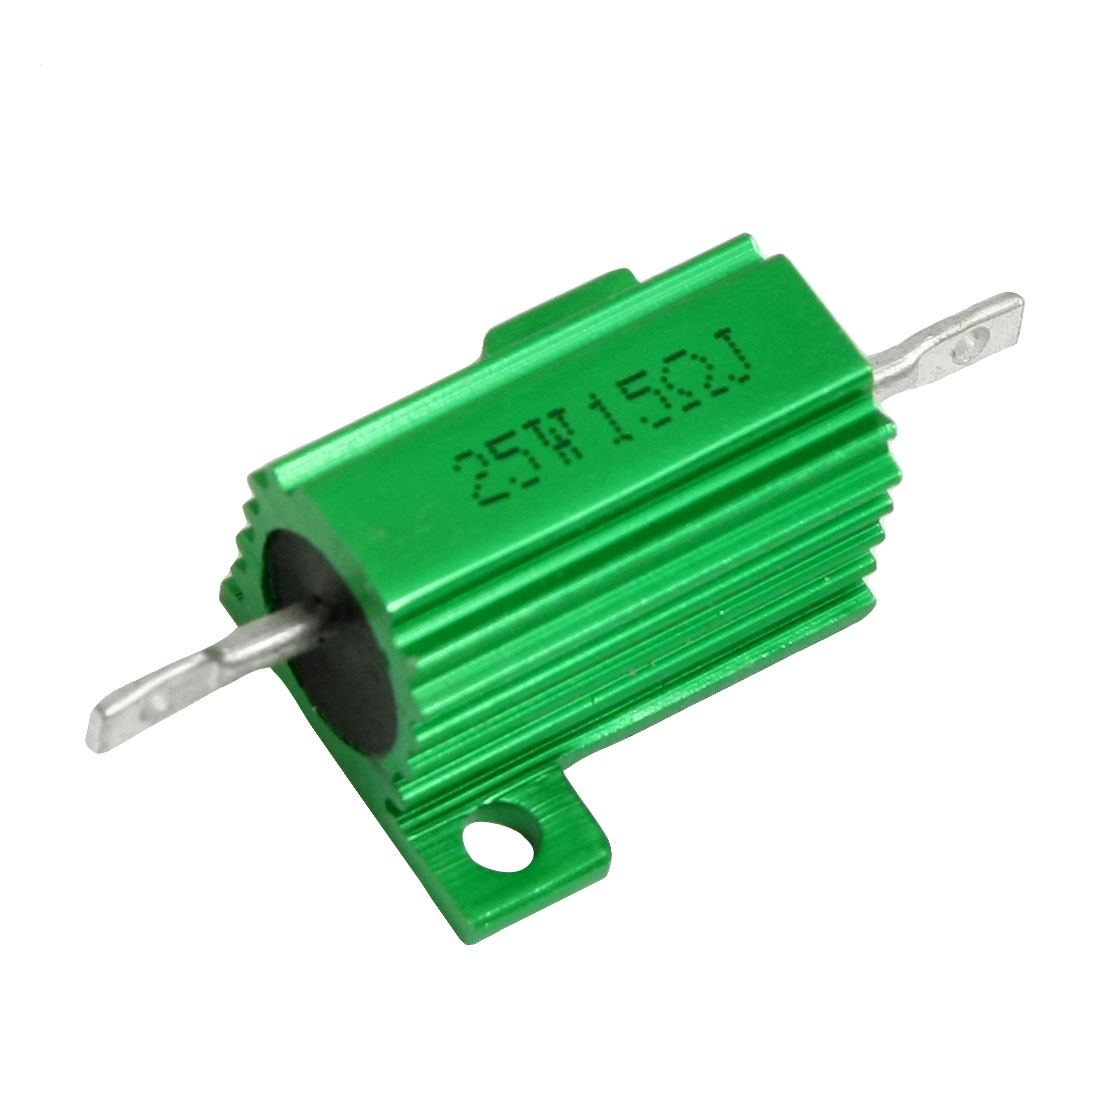 Green Aluminum Housed Clad Wirewound Resistor 5% 15 Ohm 25 Watt